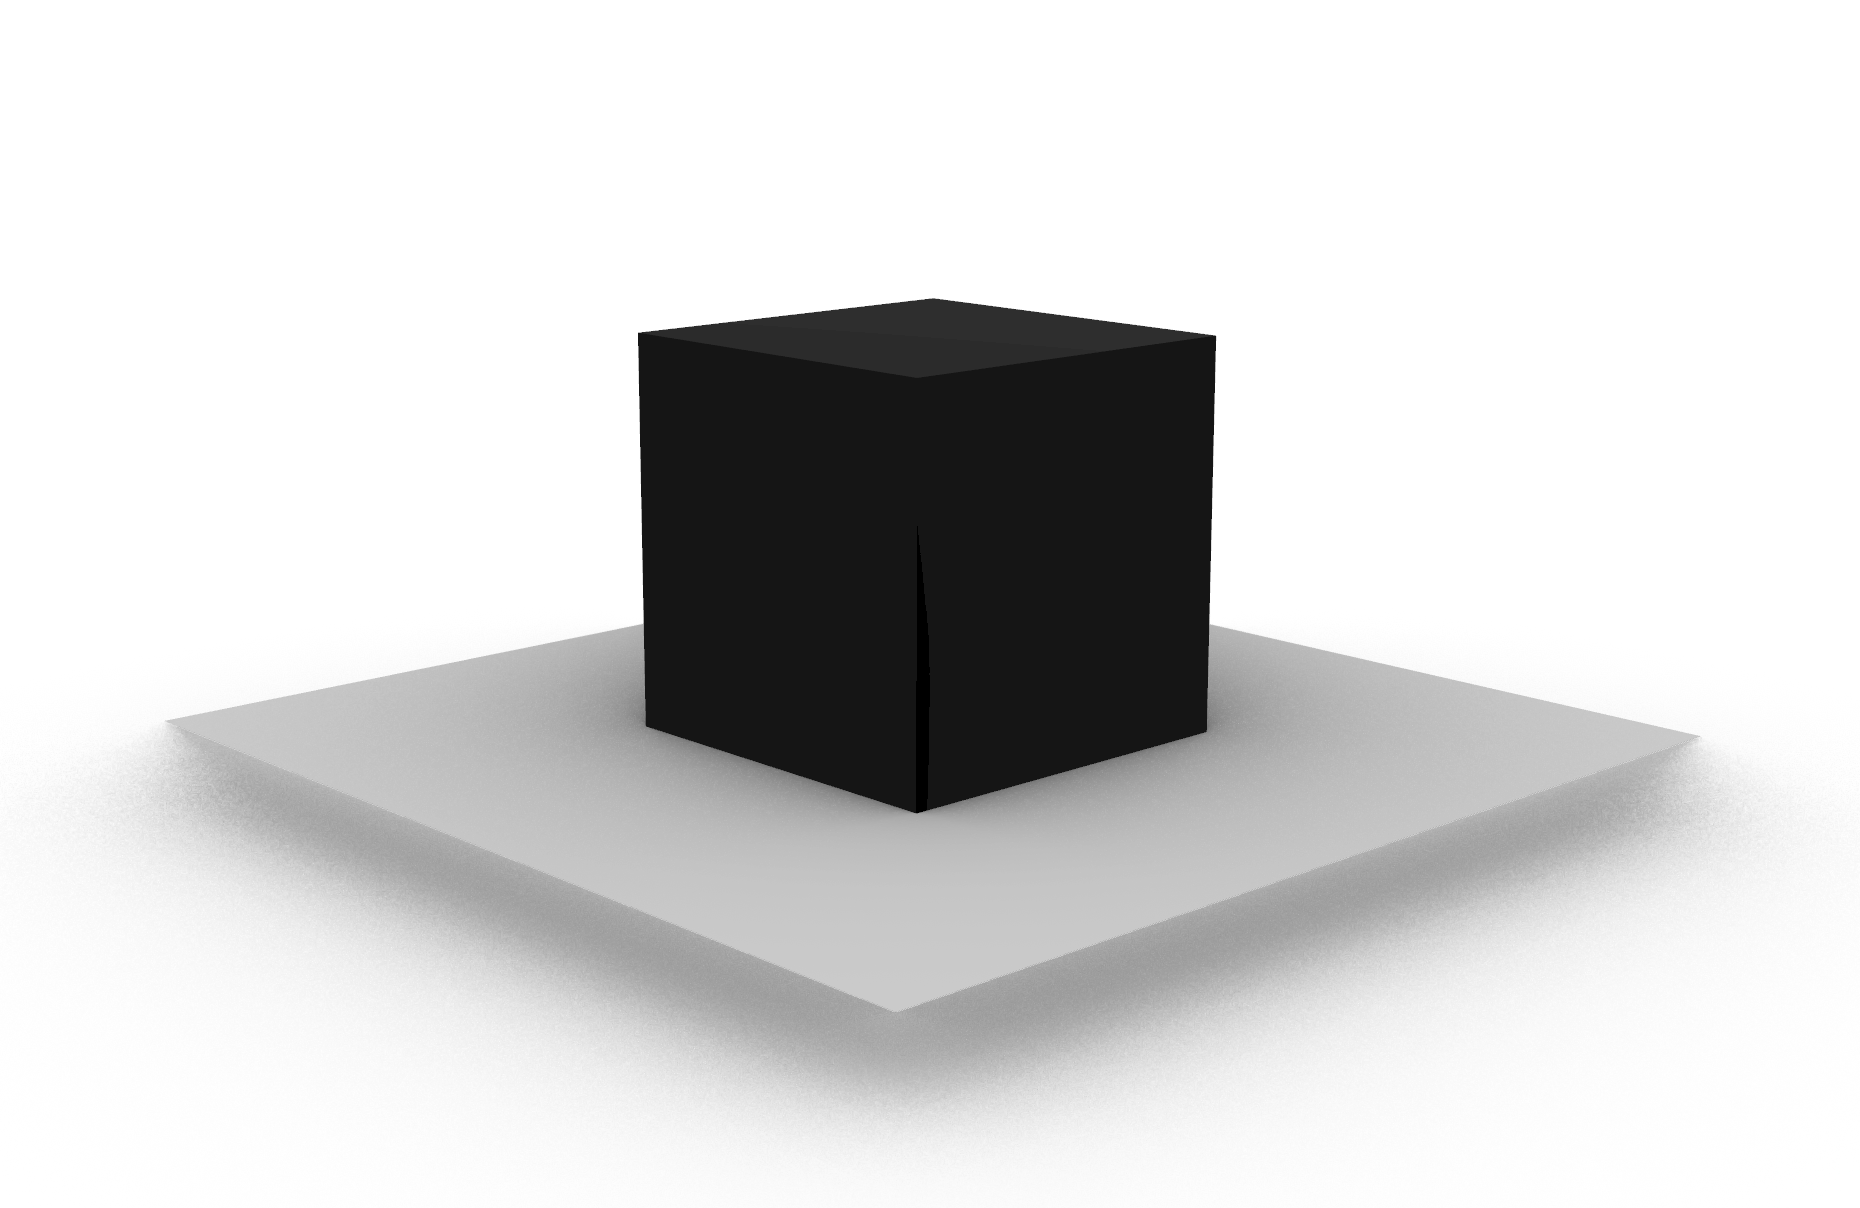 A visualisation for The Membranous Box with a black cube above a grey ground